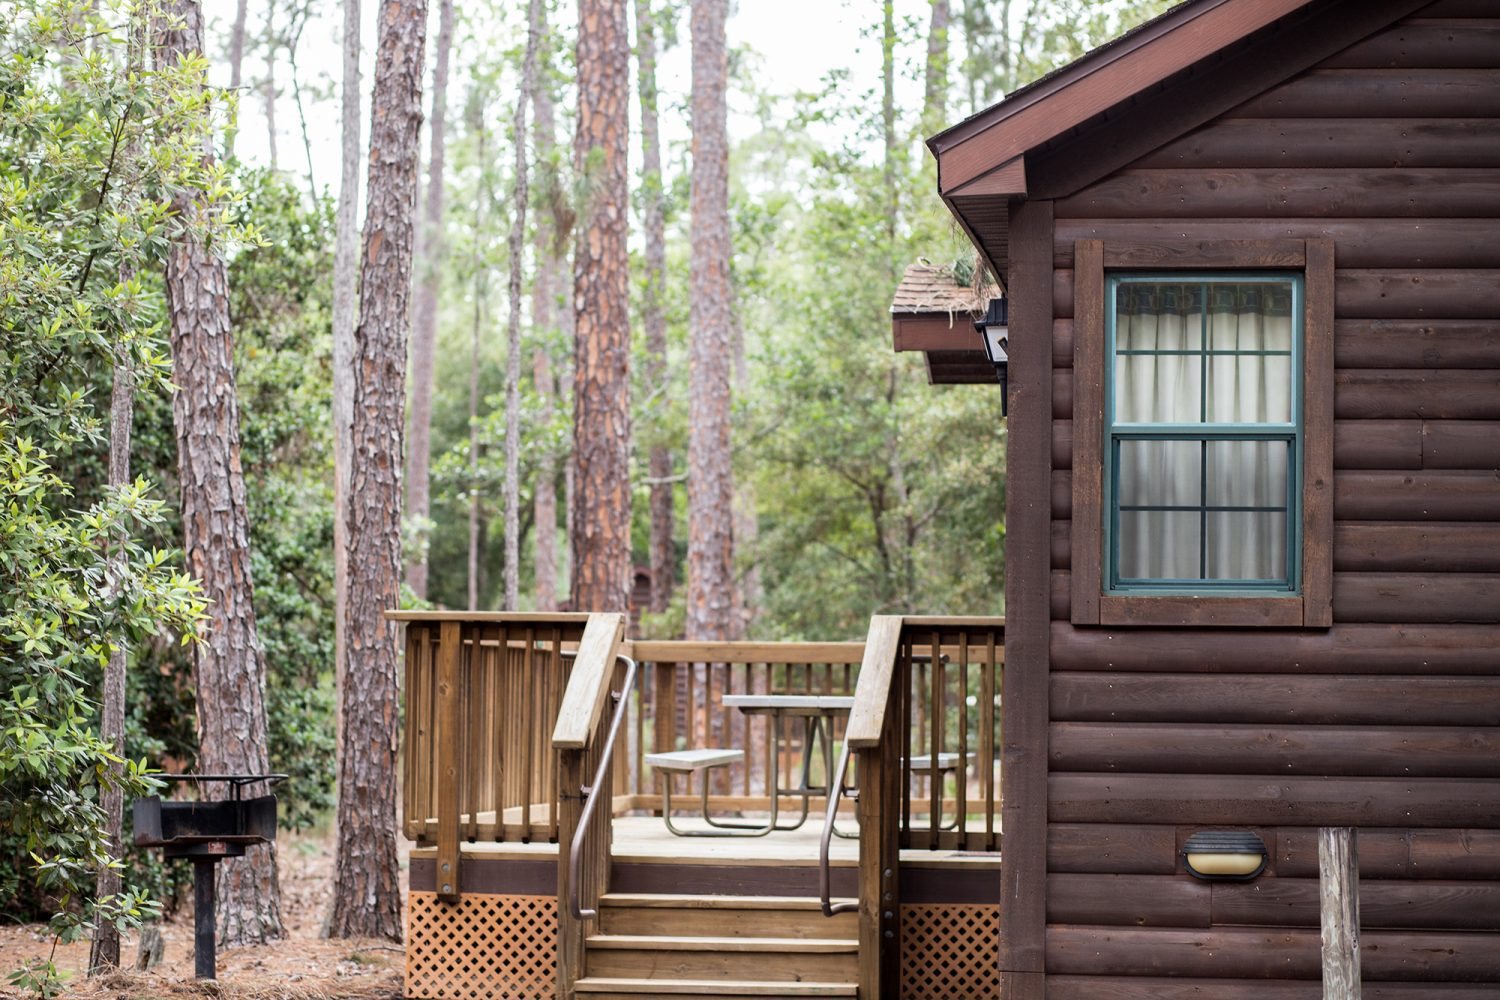 camping, must haves, trip, family vacation, family camping trip, outdoors, camping, tent, what do we need for camping, roughing it, glamping, fort wilderness, mosquito repellant, buzz away, bug spray, deet free, Buzz Away Extreme®, citronella oil, geranium oil, lemongrass oil, cedarwood oil, essential oils, plant based, family friendly